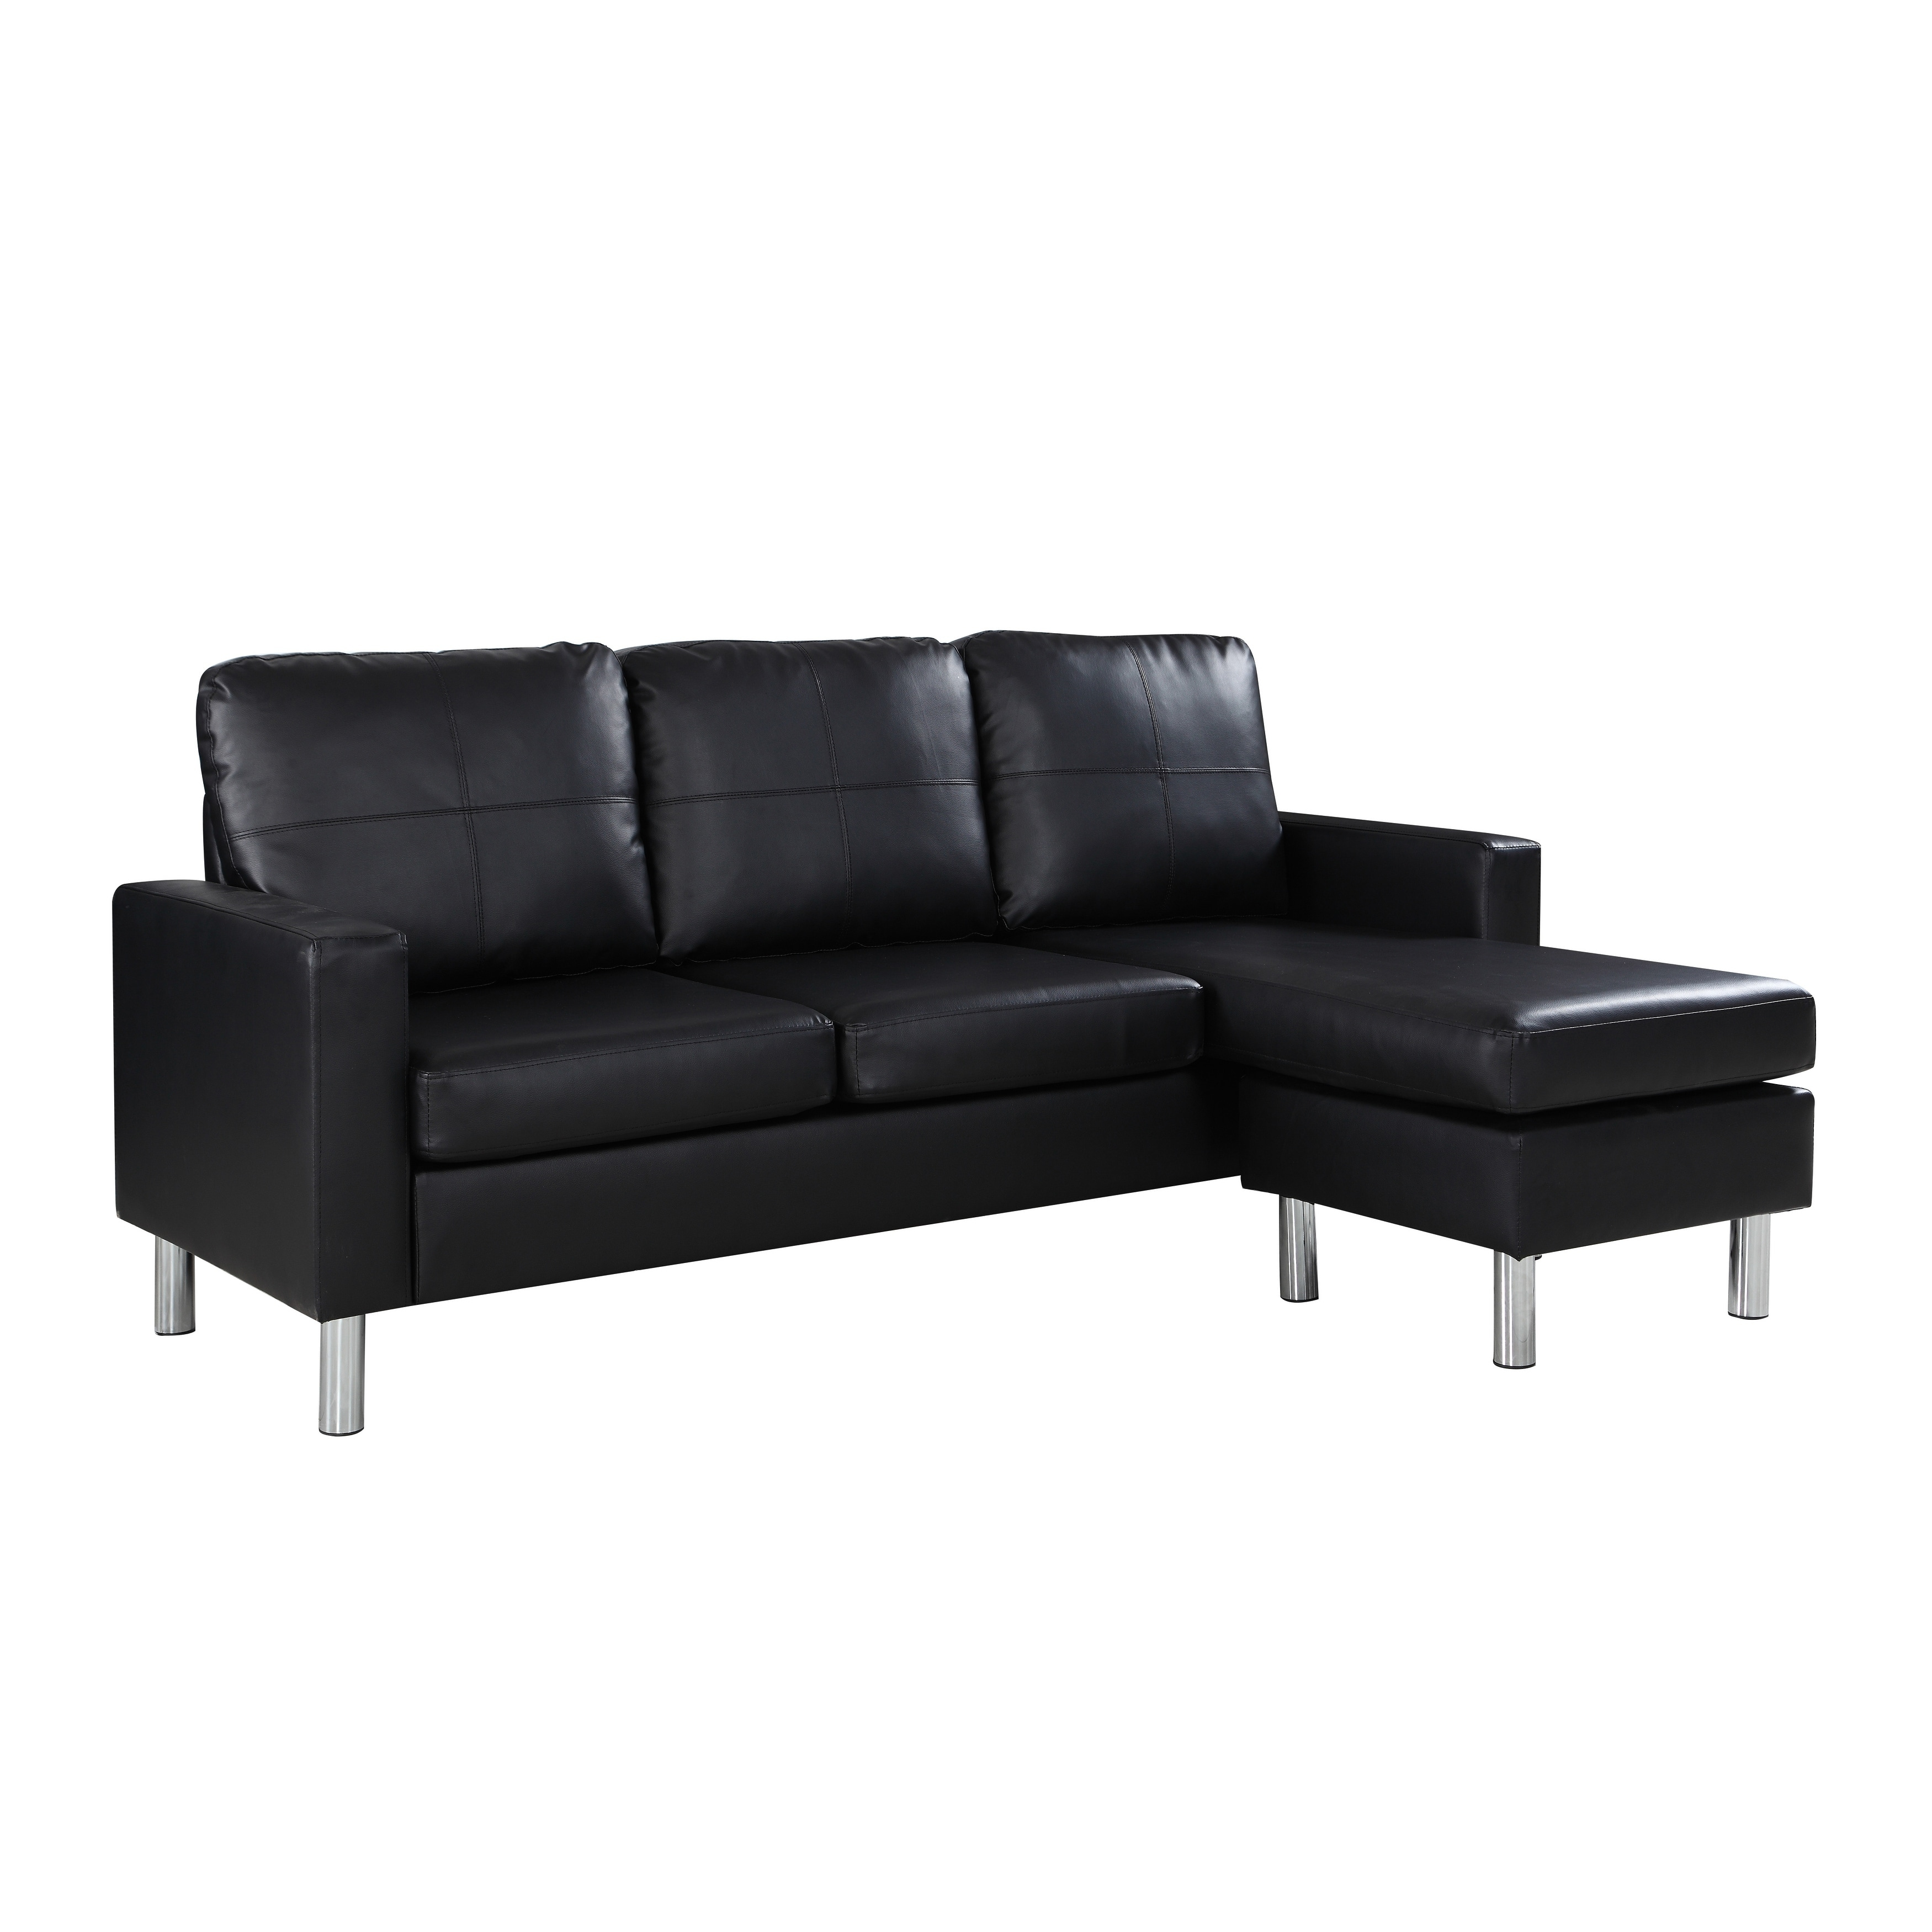 Modern Small Bonded Leather Sectional Sofa Free Shipping Today 21950411